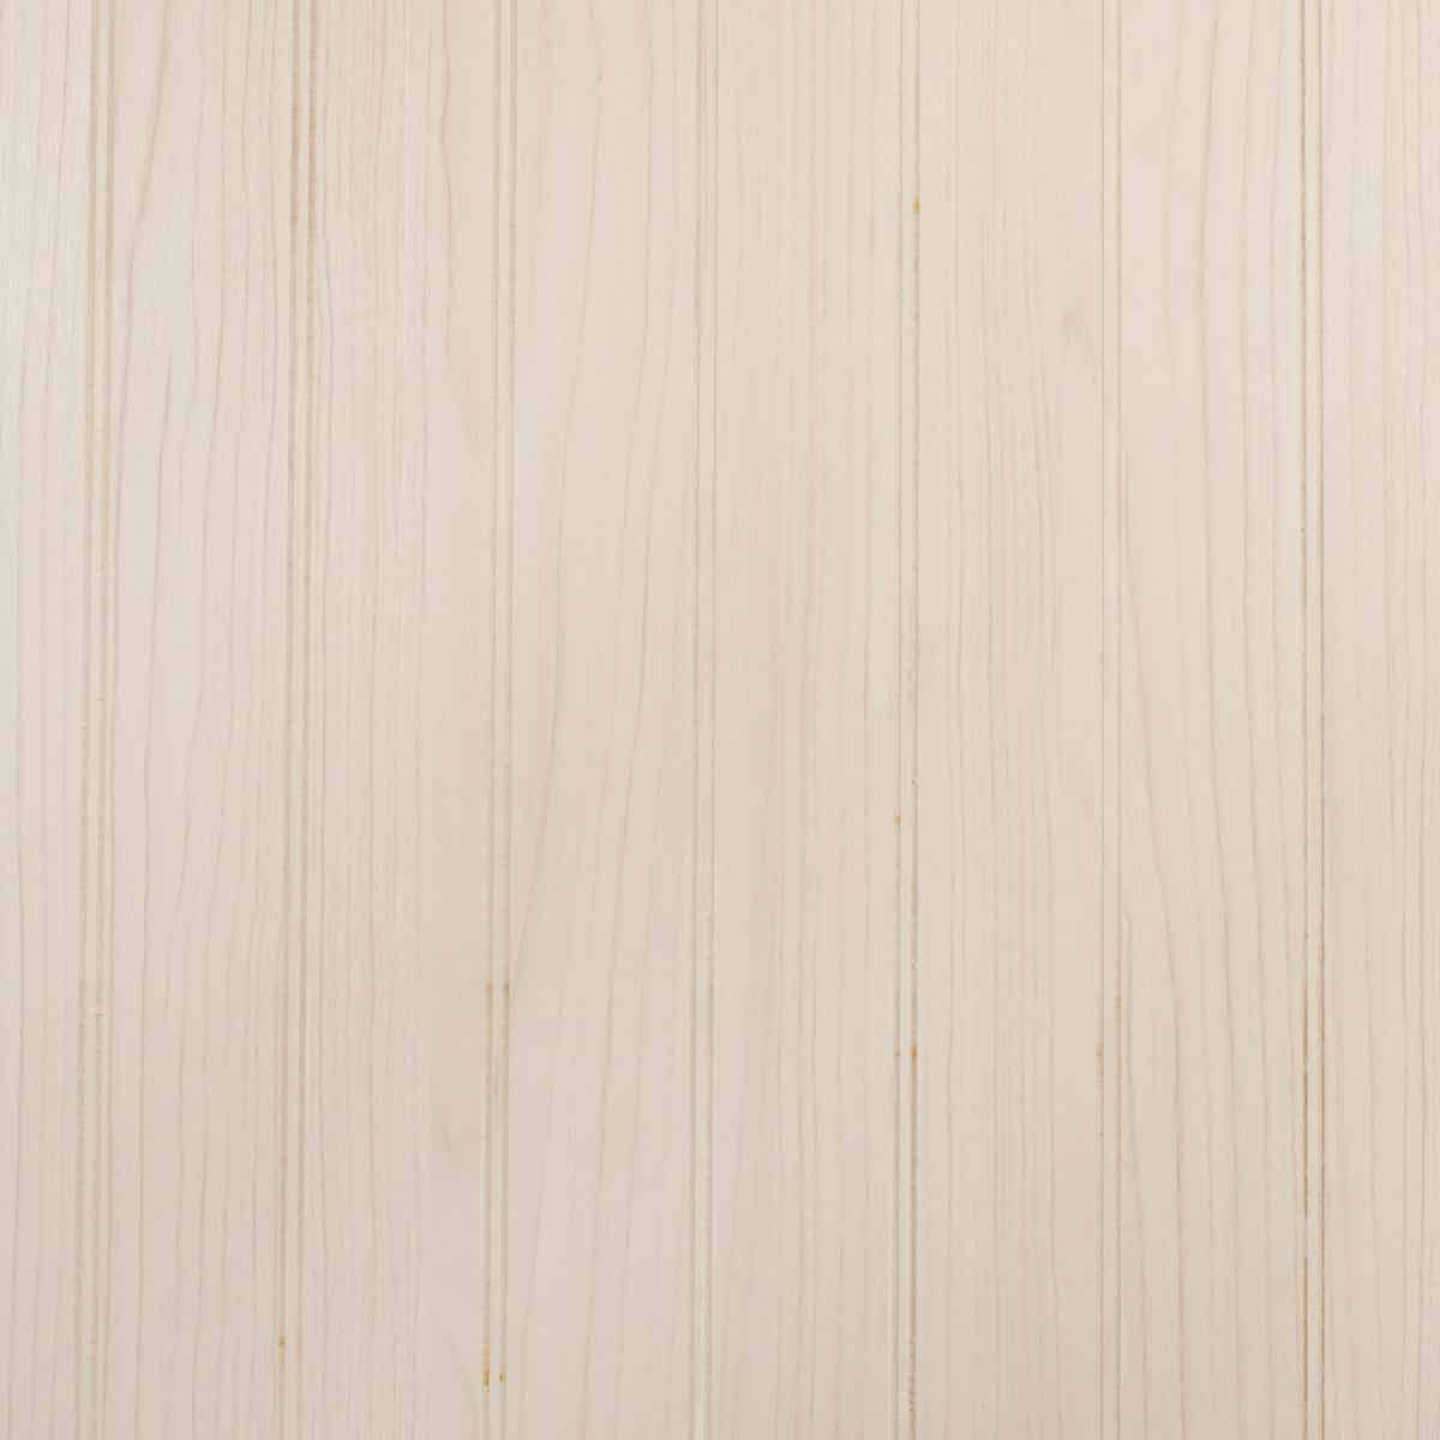 Global Product Sourcing 4 Ft. x 8 Ft. x 1/8 In. Light House White Beaded Profile Wall Paneling Image 1